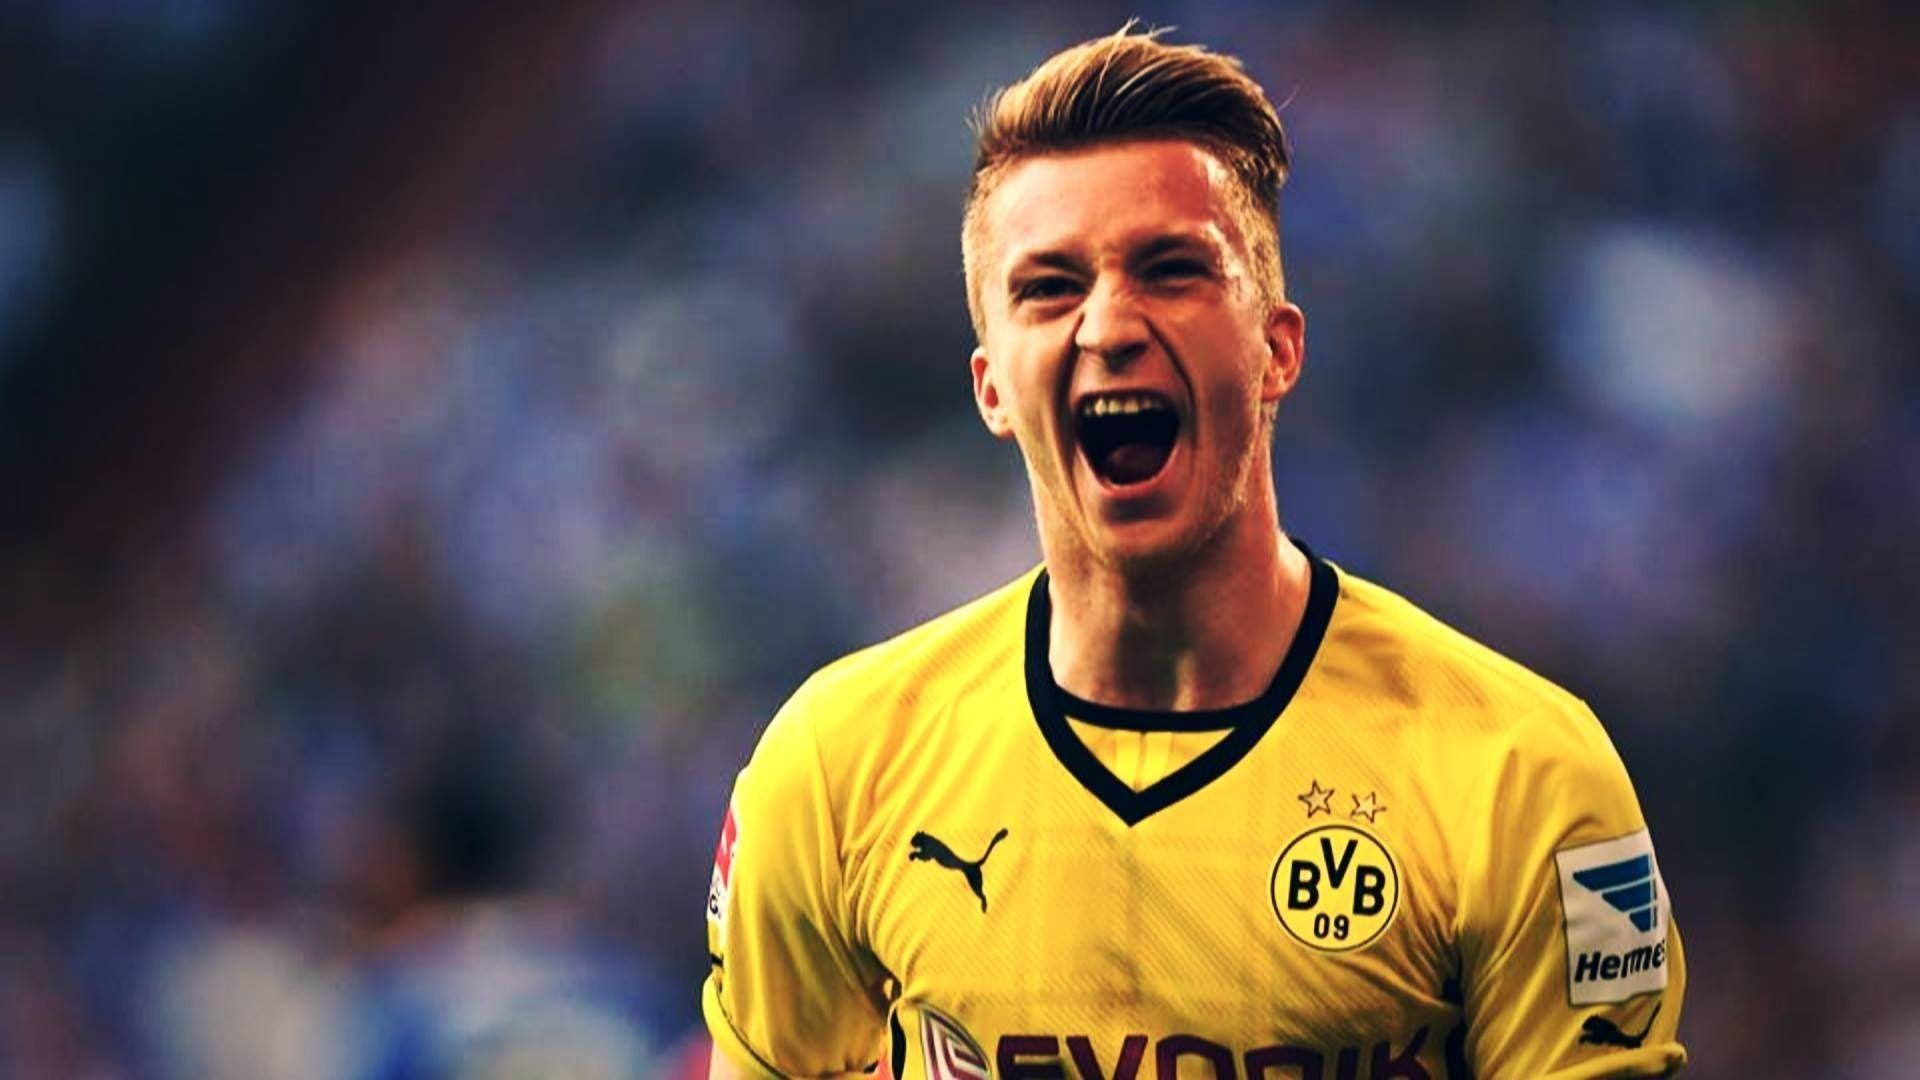 Marco Reus Wallpapers Wallpaper Cave